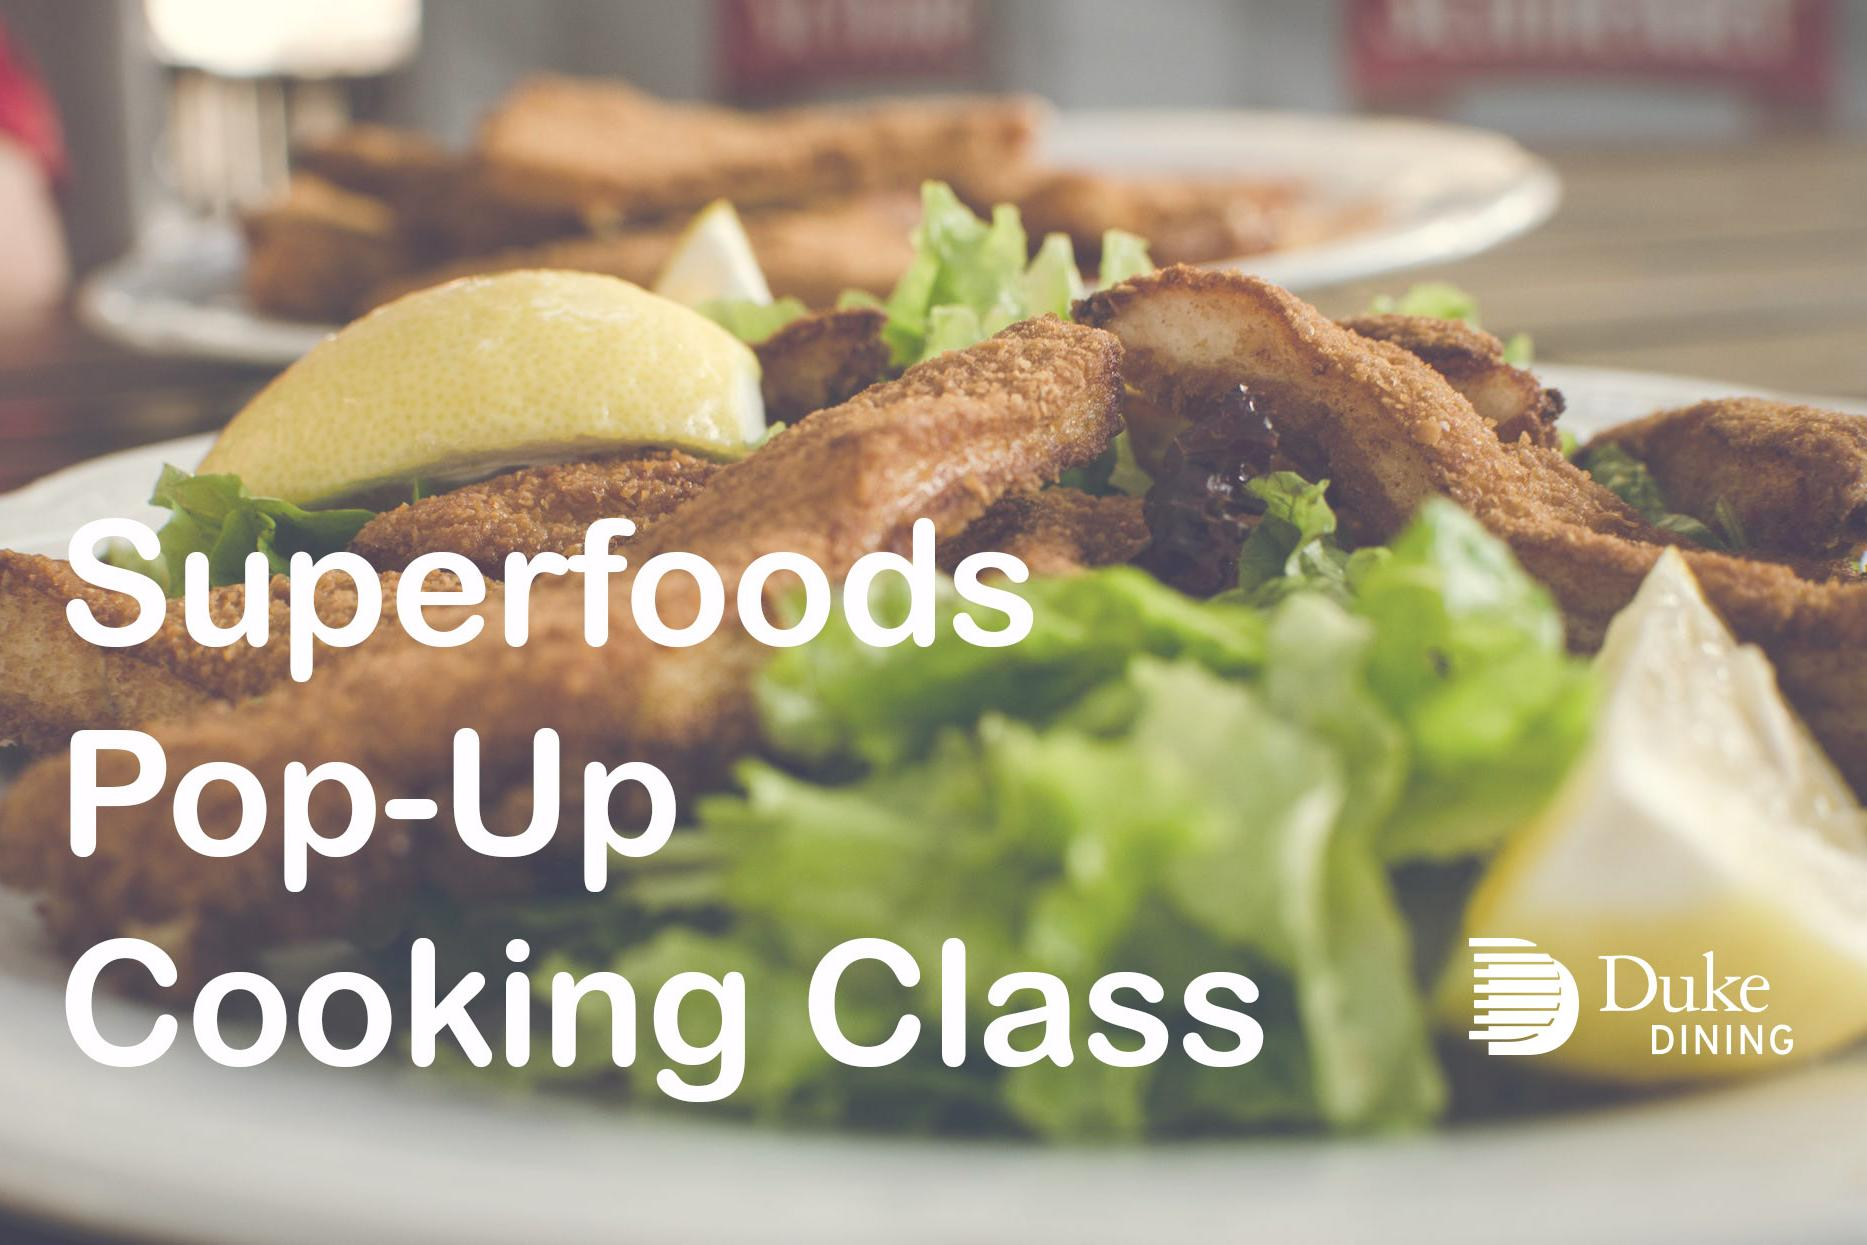 Superfoods Cooking Class